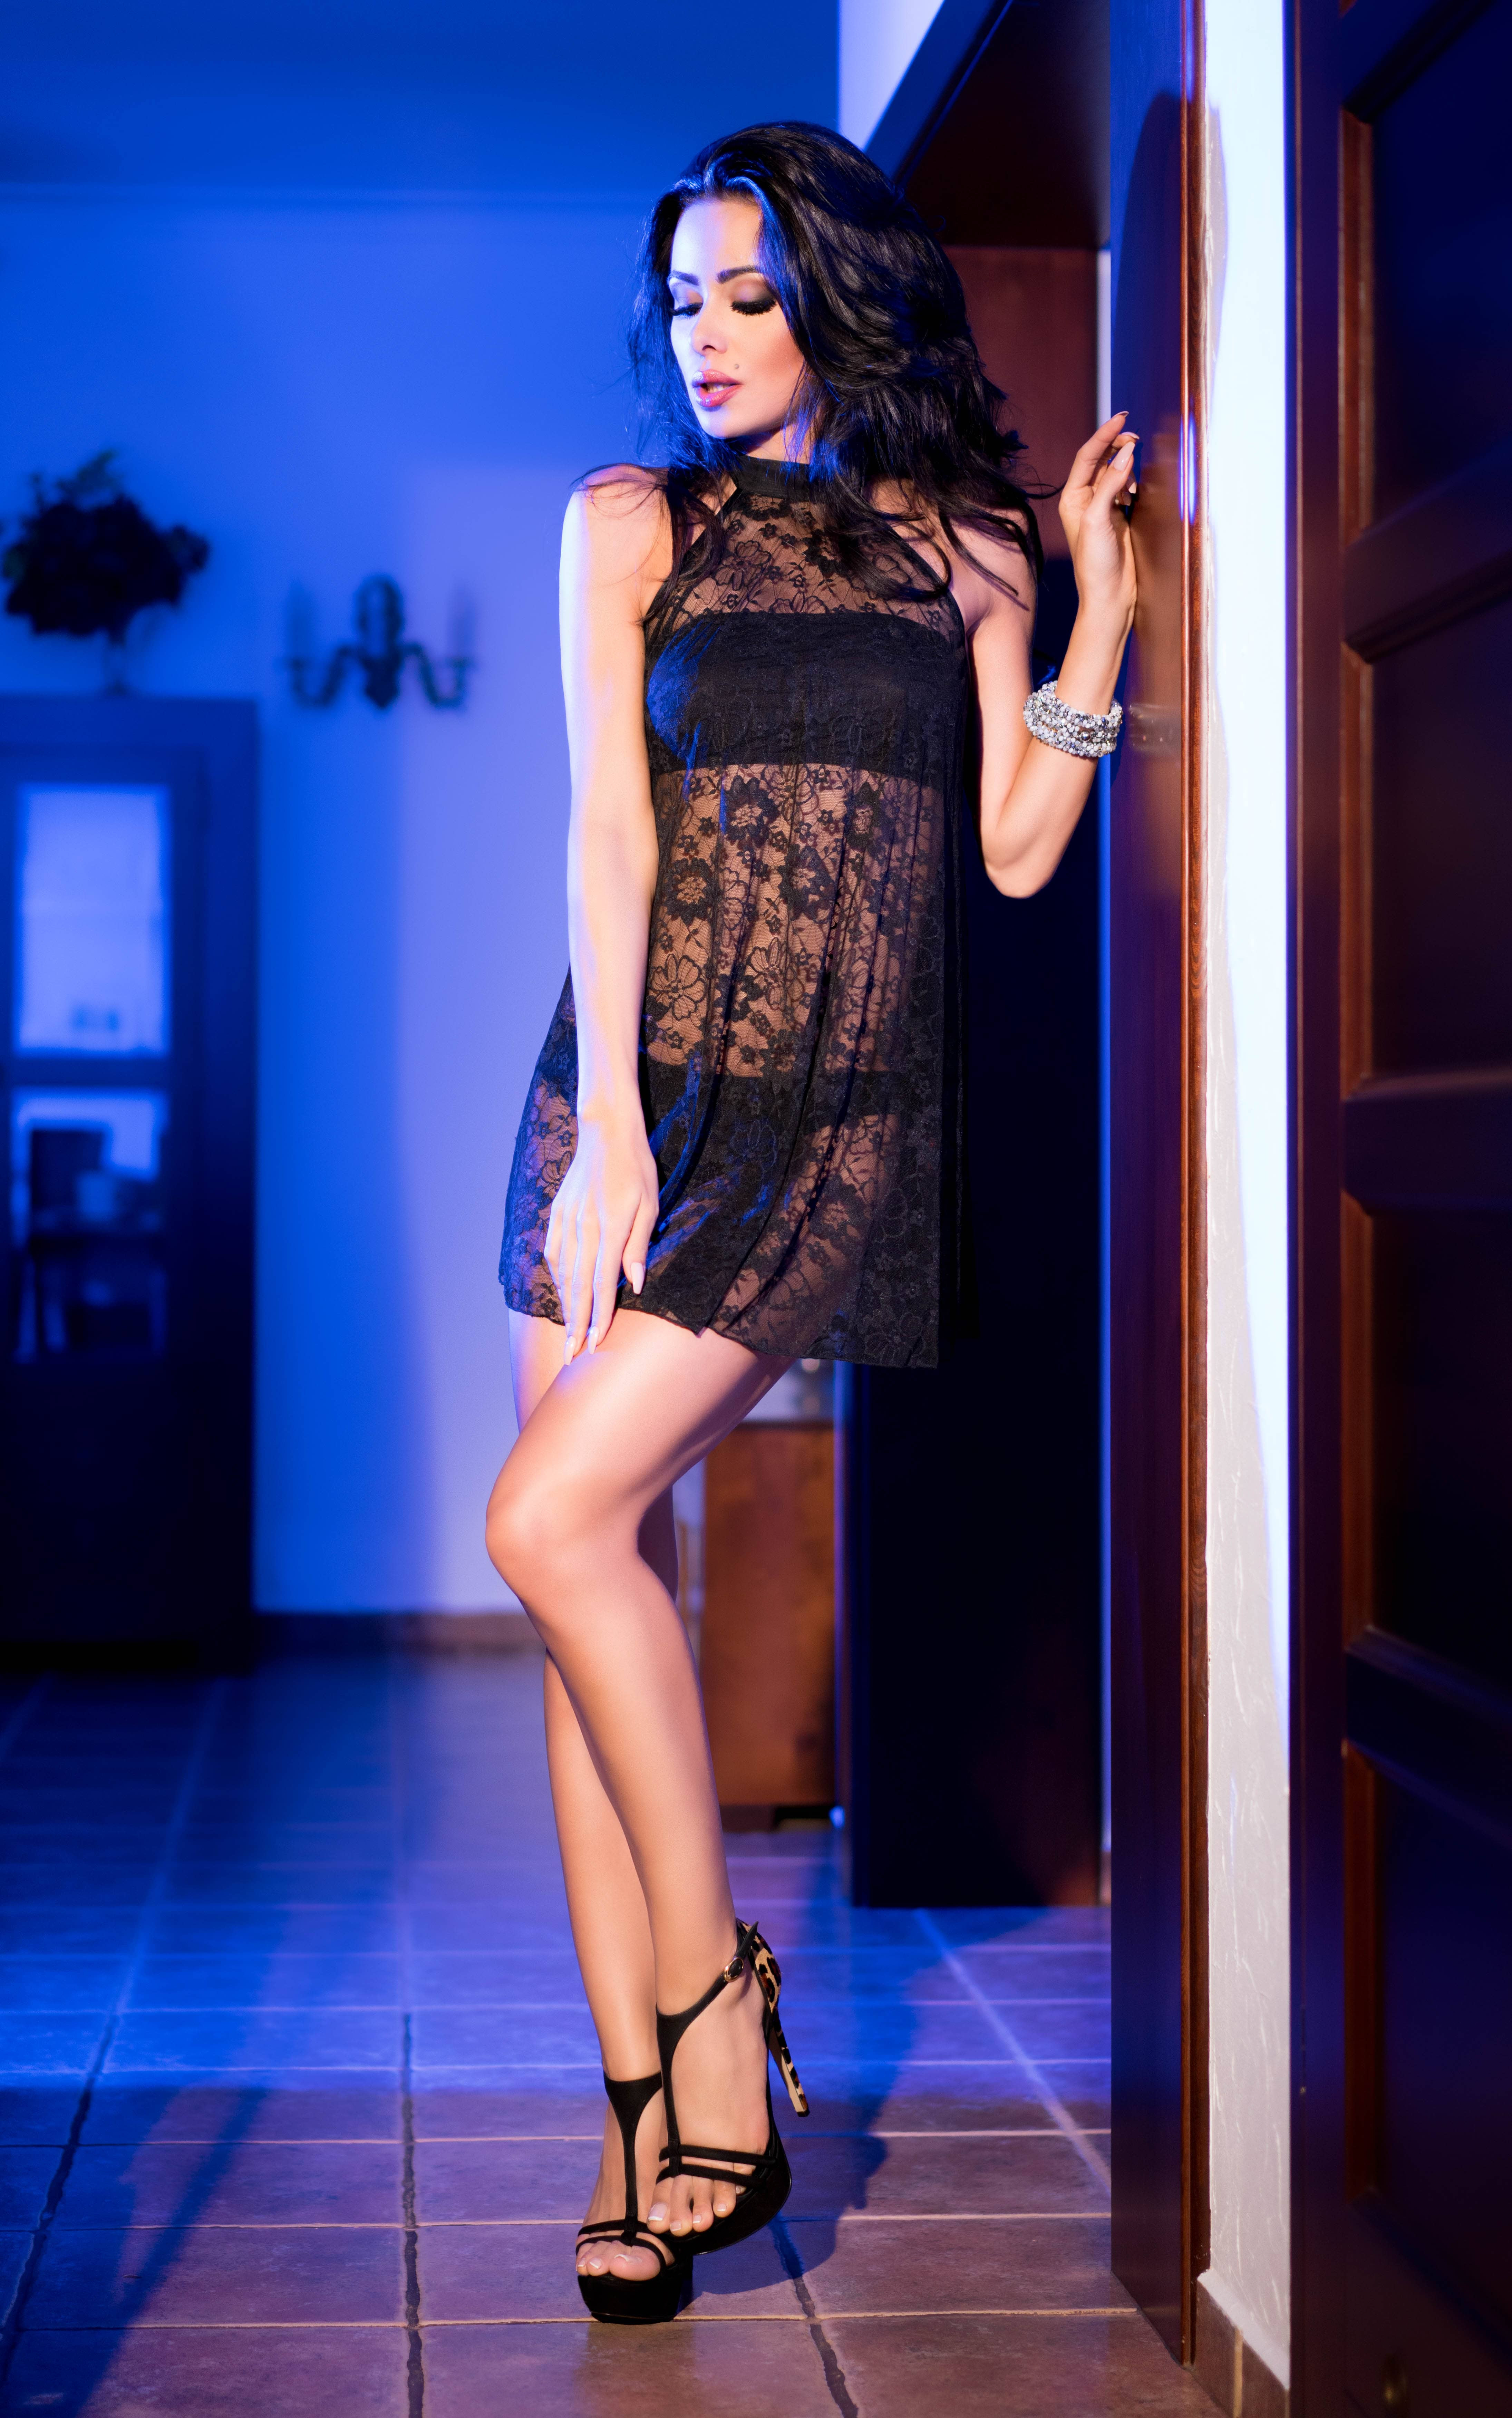 CR 4082 S/M Black Lacedress with Top and Panty - Size S/M thumbnail